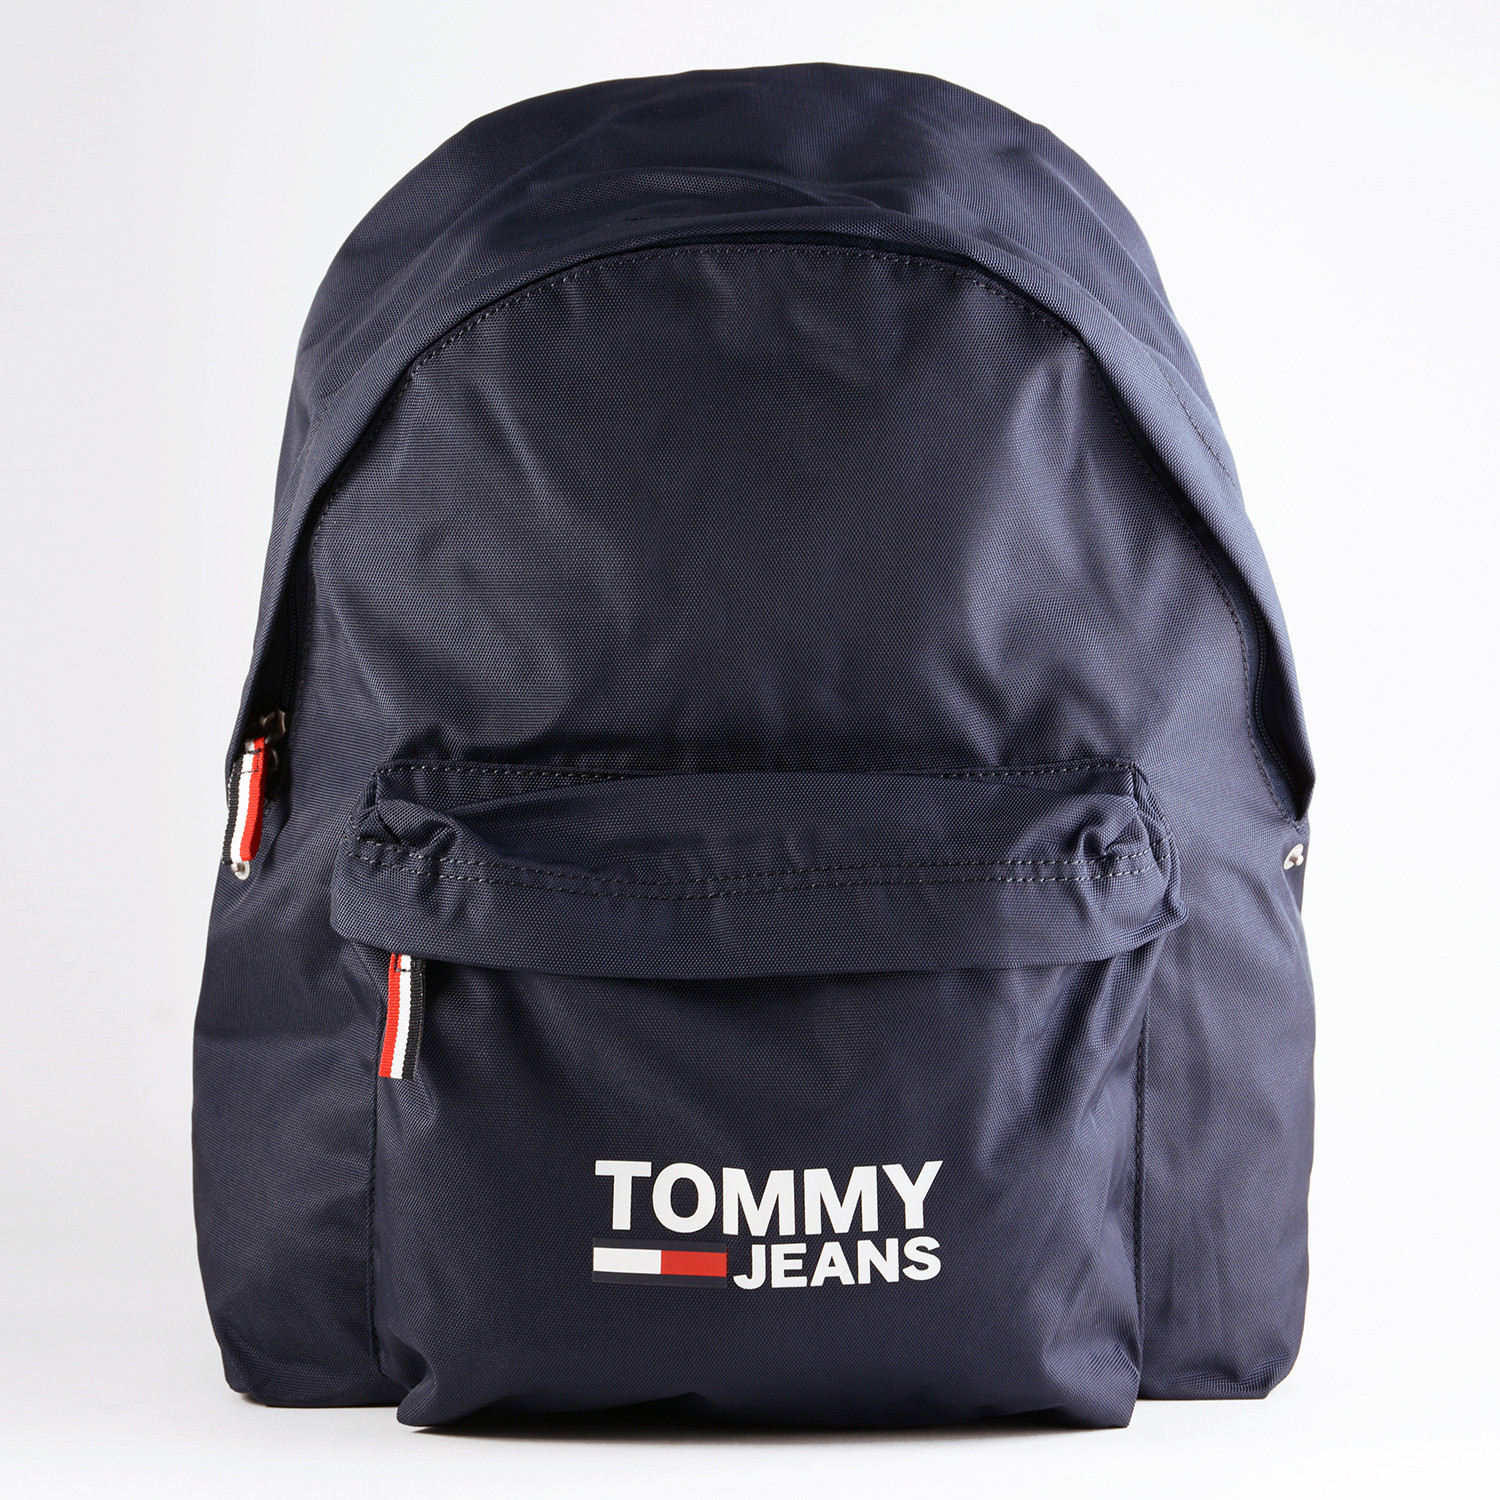 Tommy Jeans Cool City Backpack (9000046785_12993)